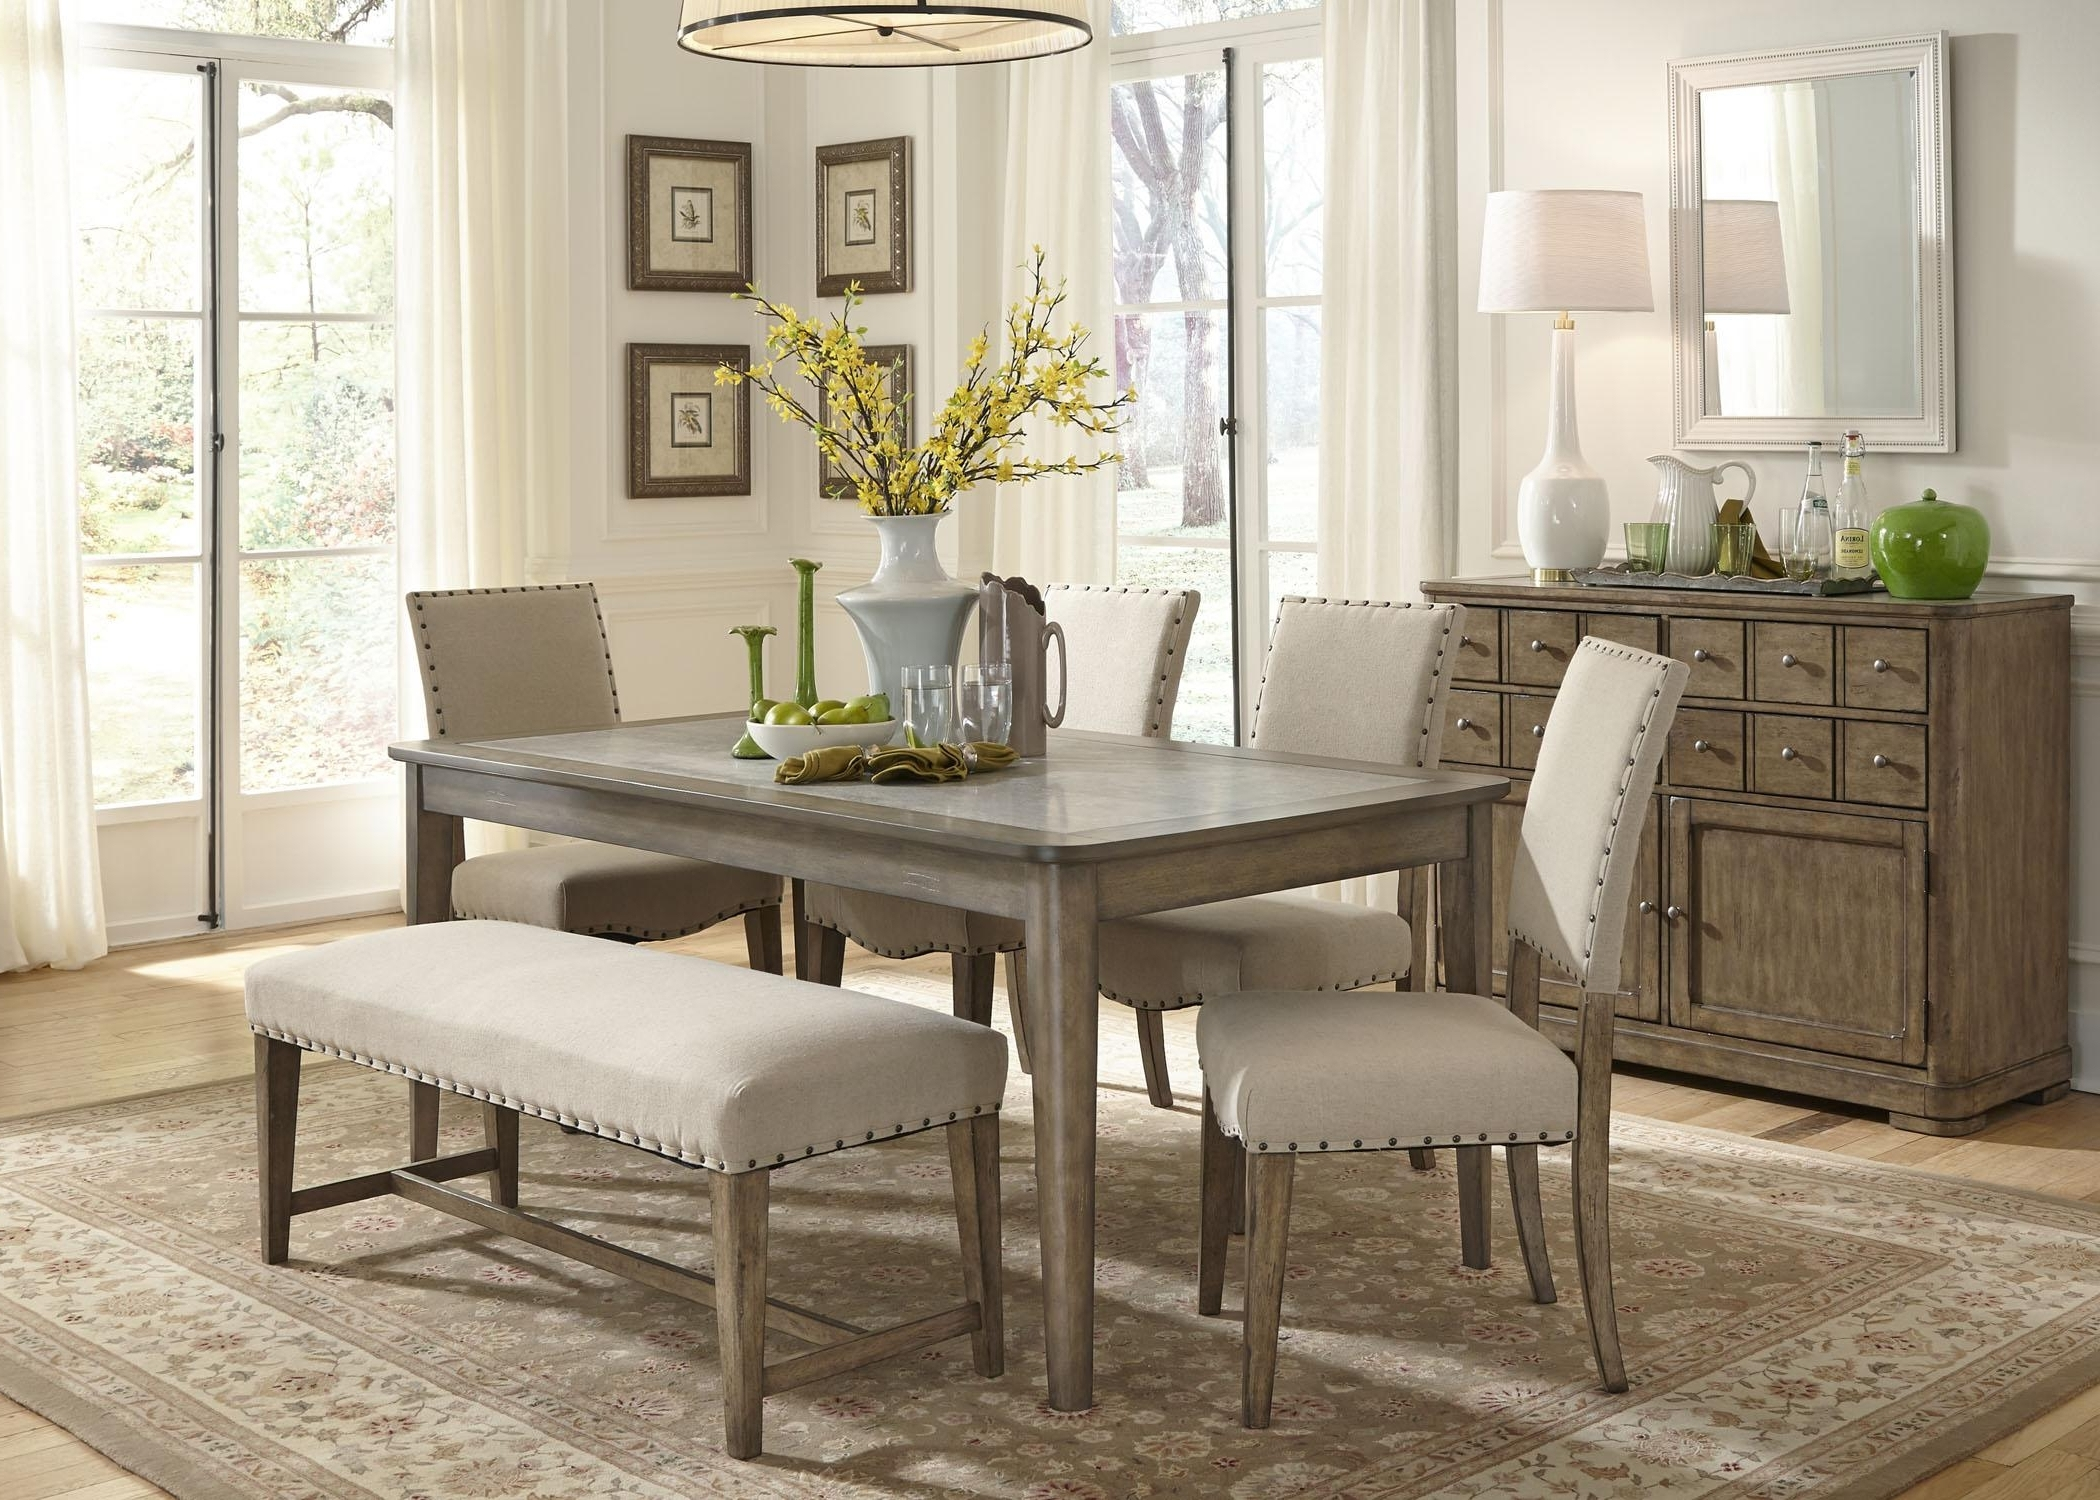 Recent Palazzo 6 Piece Rectangle Dining Sets With Joss Side Chairs with 6 Piece Dining Room Set With Bench - Image Dining Room Cacheimages.co